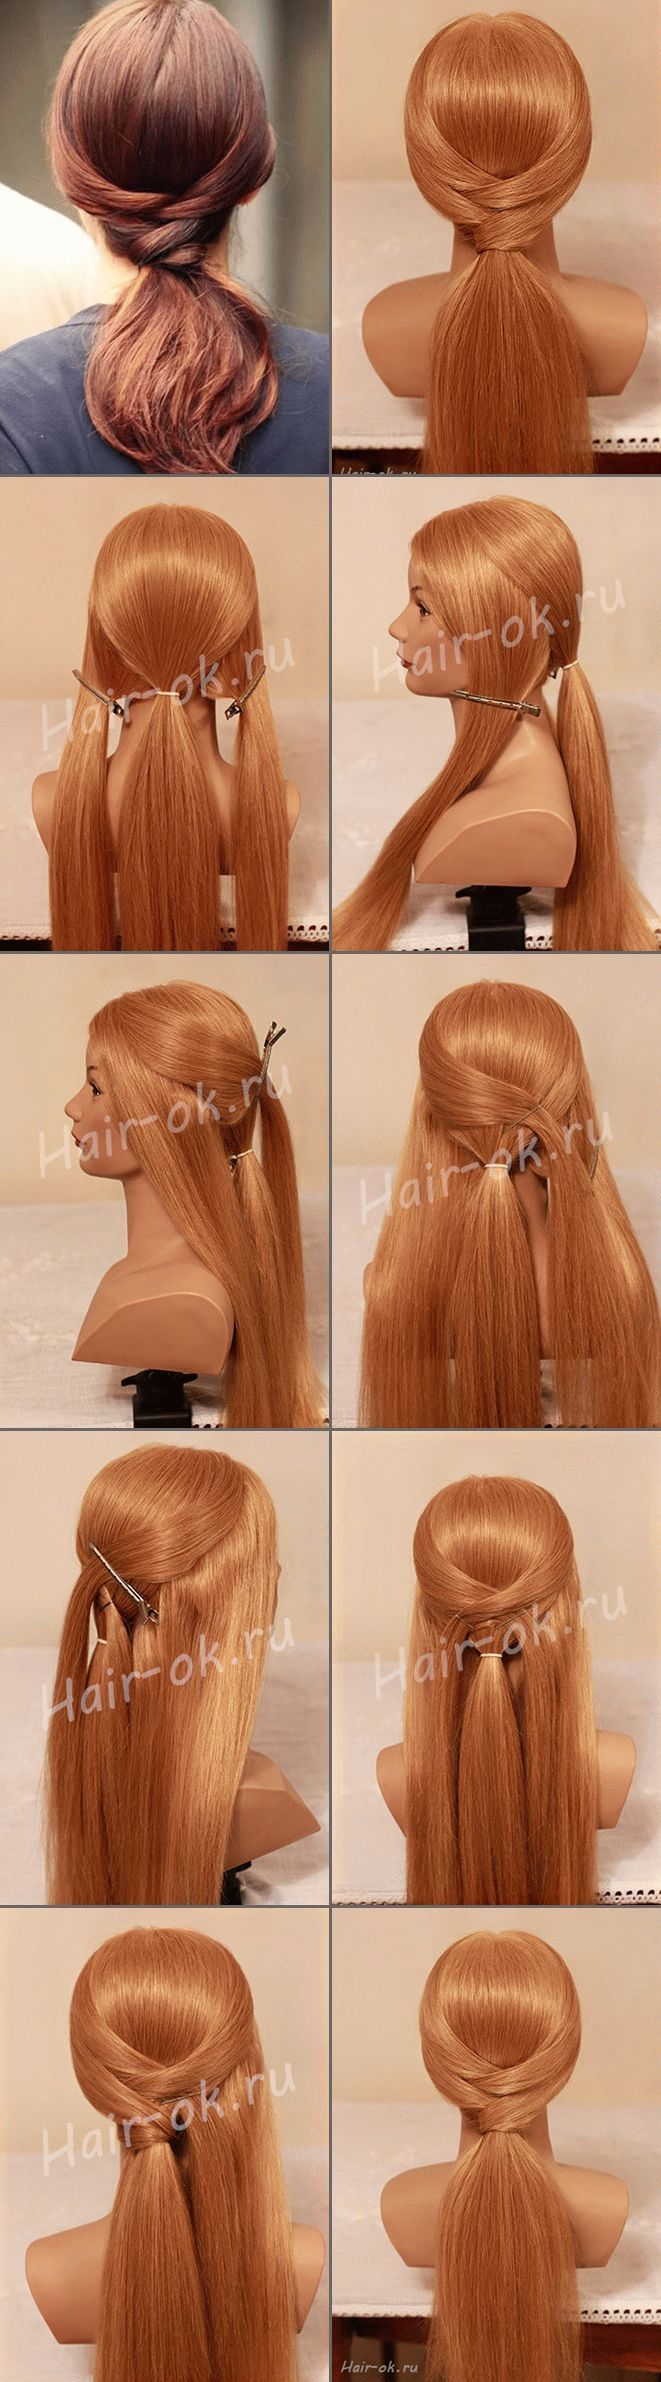 How to diy easy gossip girl hairstyle projects to try pinterest how to diy easy gossip girl hairstyle solutioingenieria Gallery